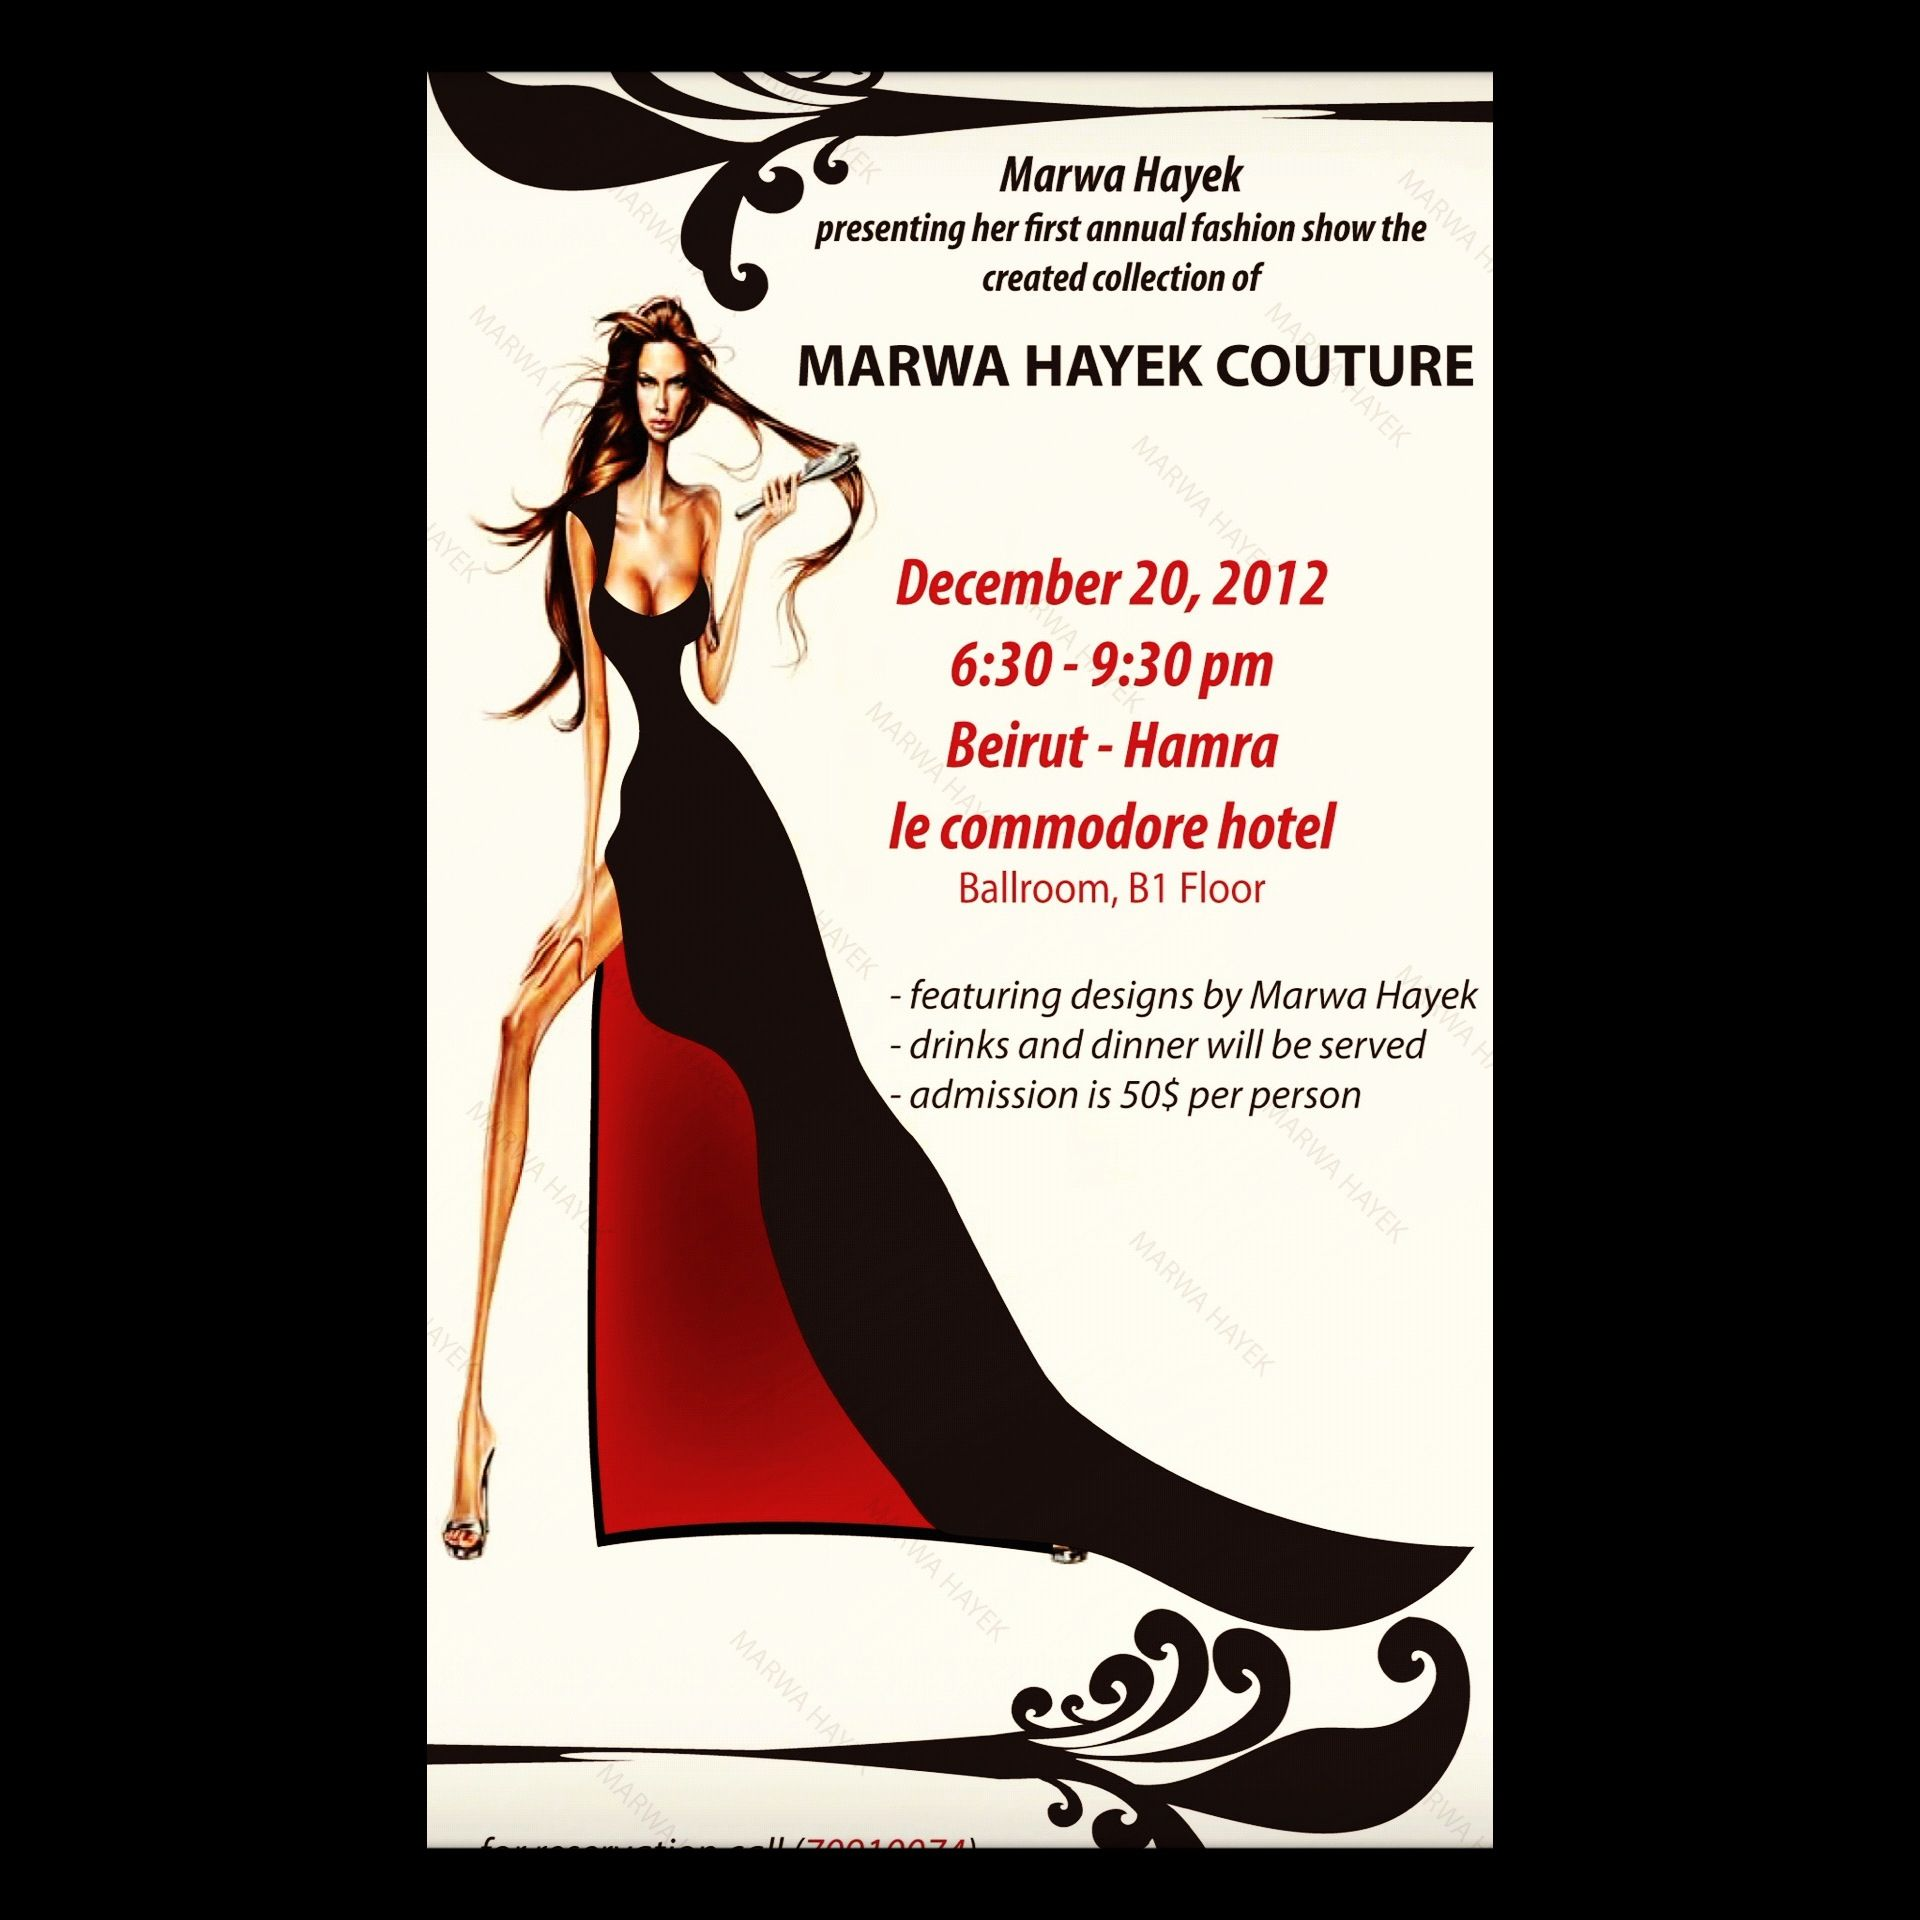 Marwa Hayek Fashion Show Invitation Card Fashion Show